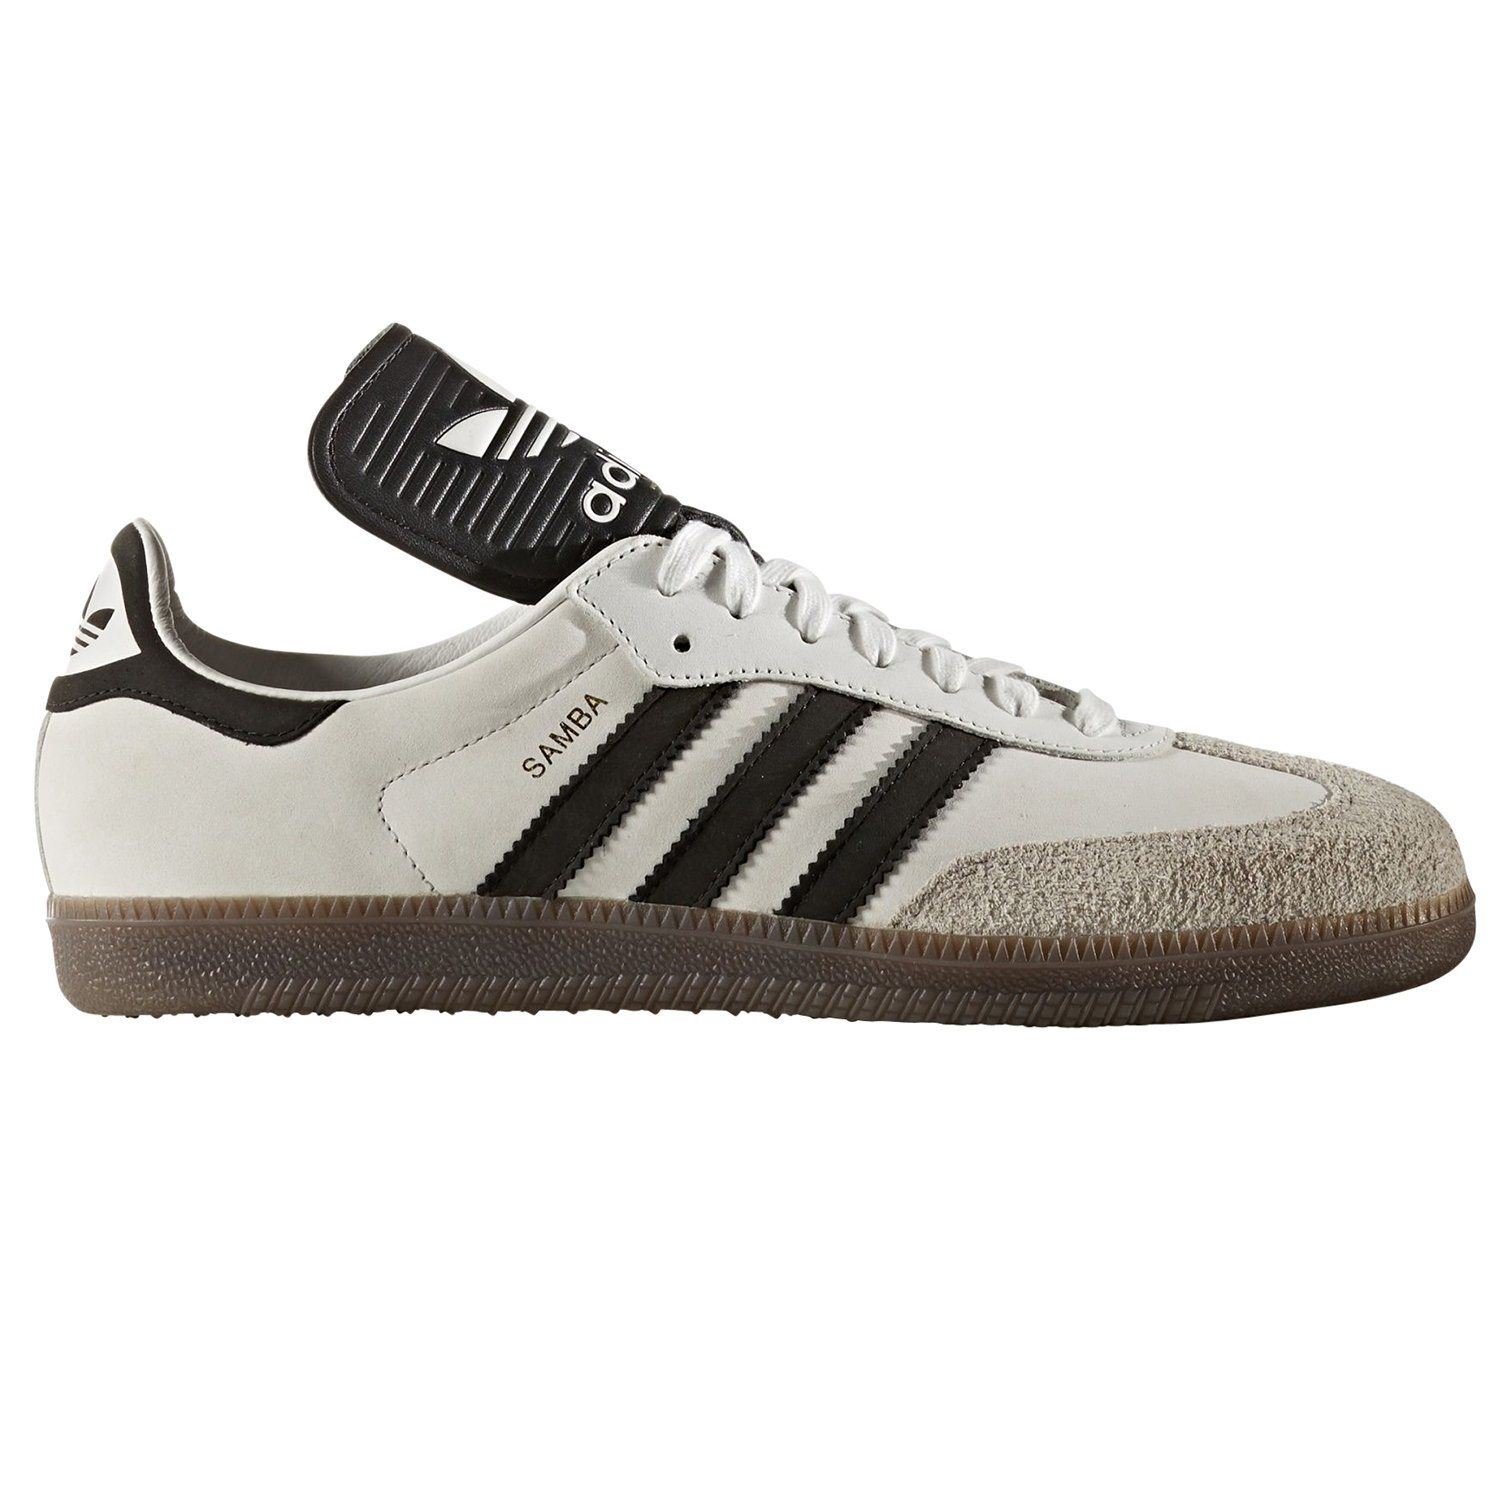 Details zu adidas ORIGINALS SAMBA OG MADE IN GERMANY TRAINERS WHITE RETRO VINTAGE RARE NEW